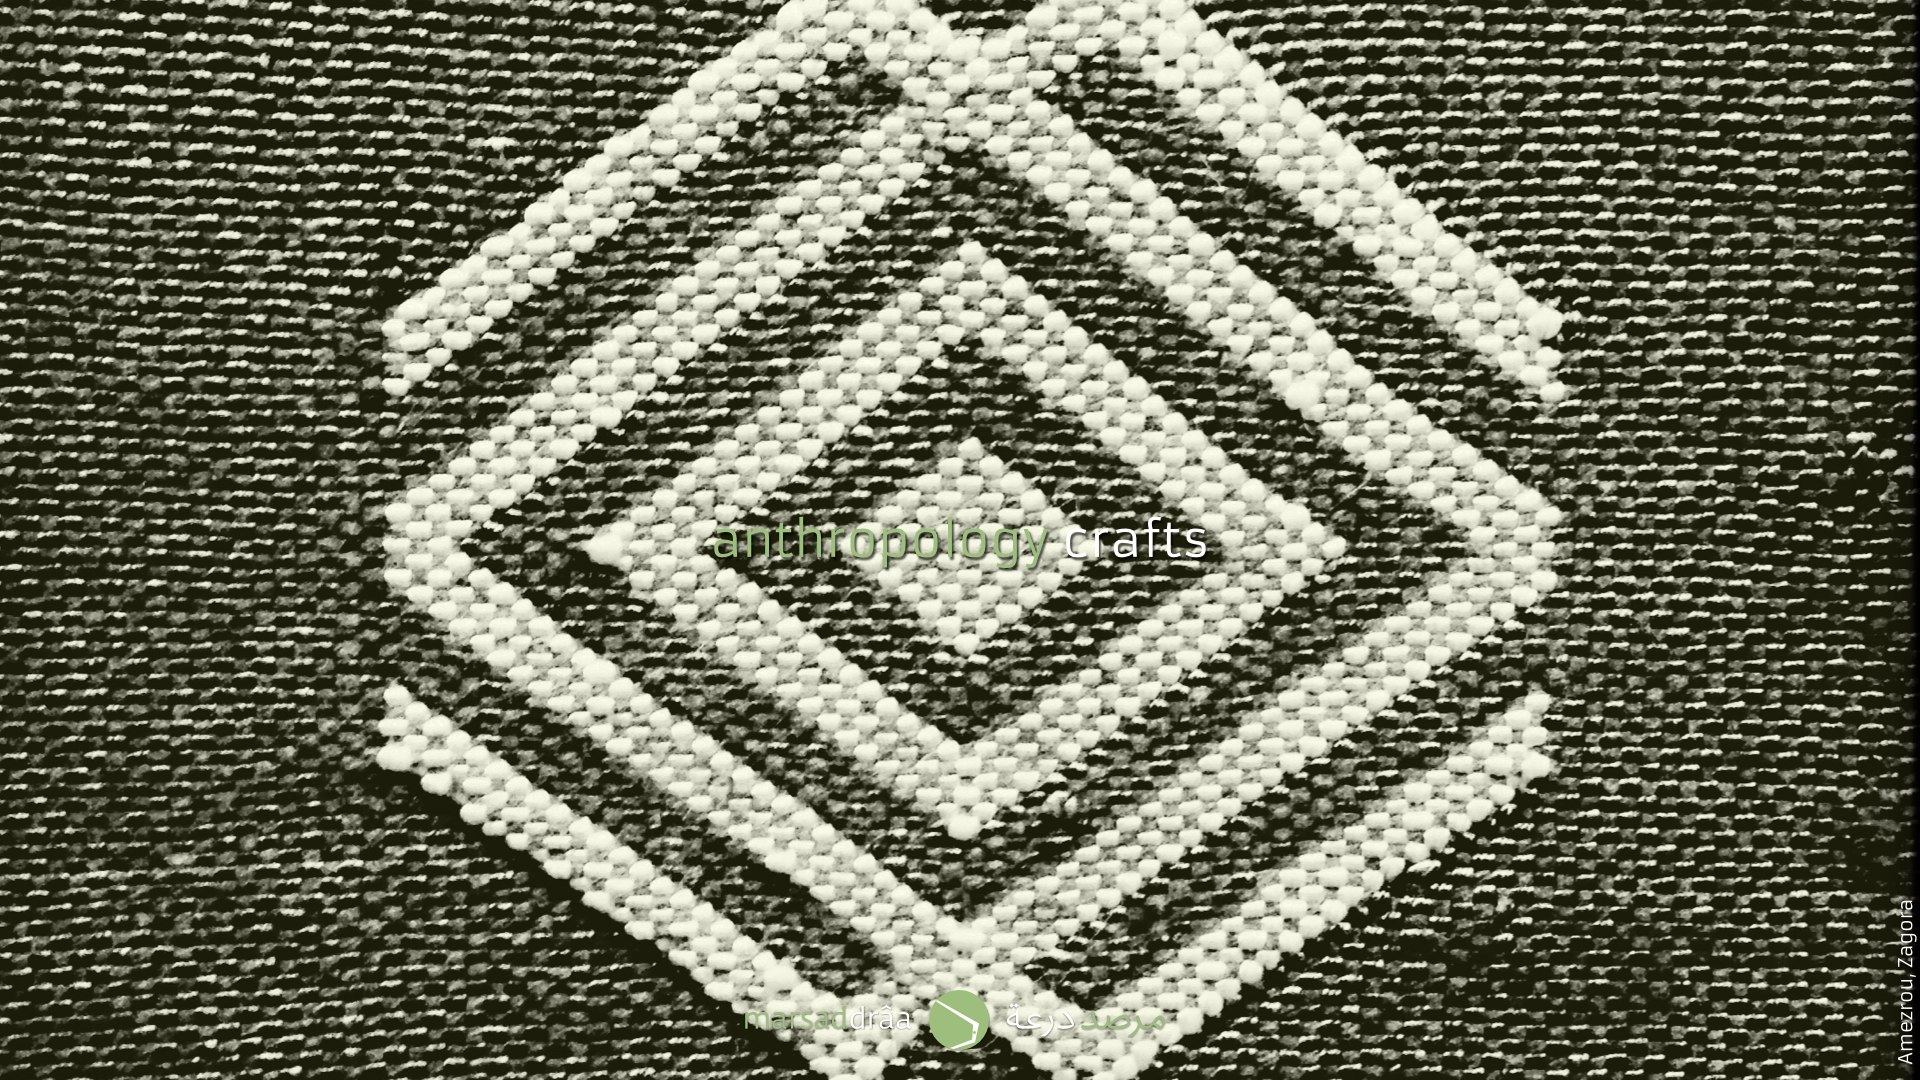 Or like the design used in carpets, that comes from...